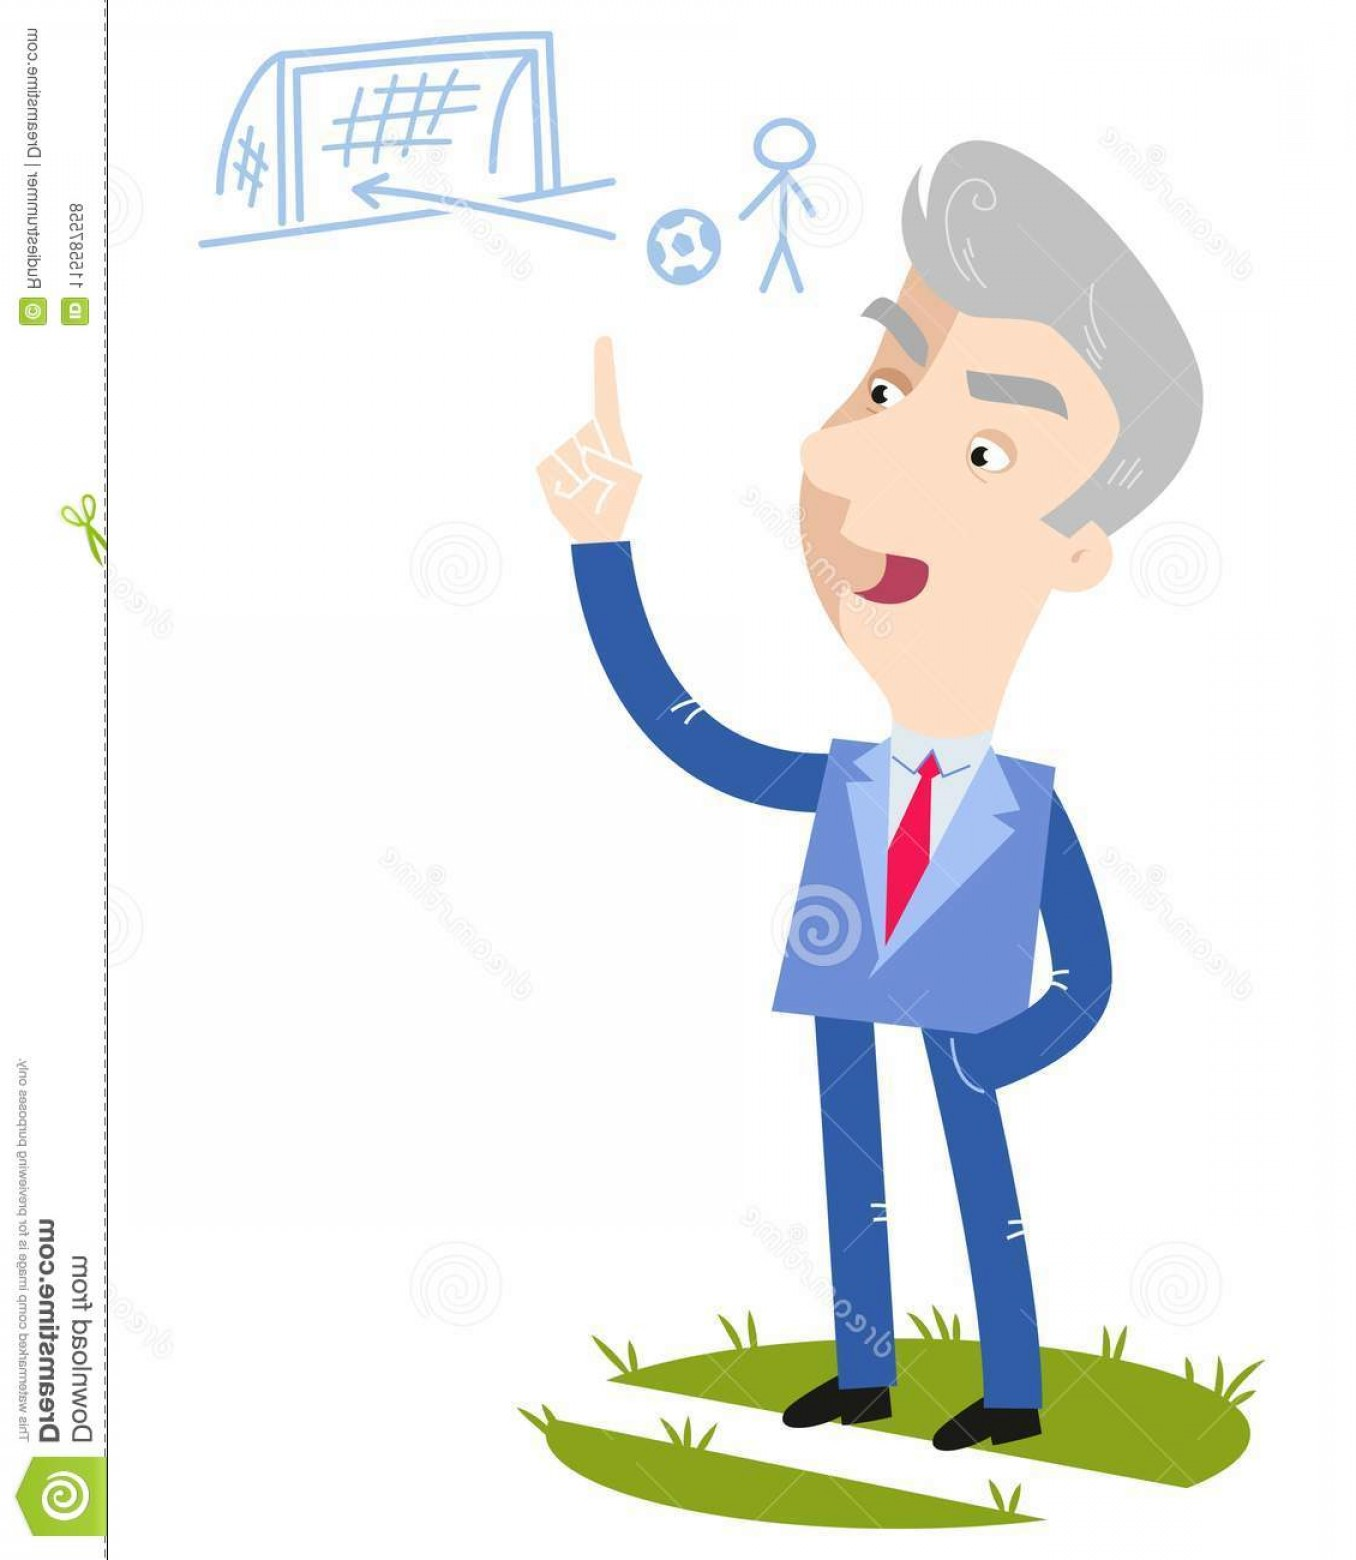 Vector Straightforward: Relaxed Old Cartoon Football Coach Wearing Blue Suit Giving Simple Straightforward Instructions Sideline Relaxed Old Image